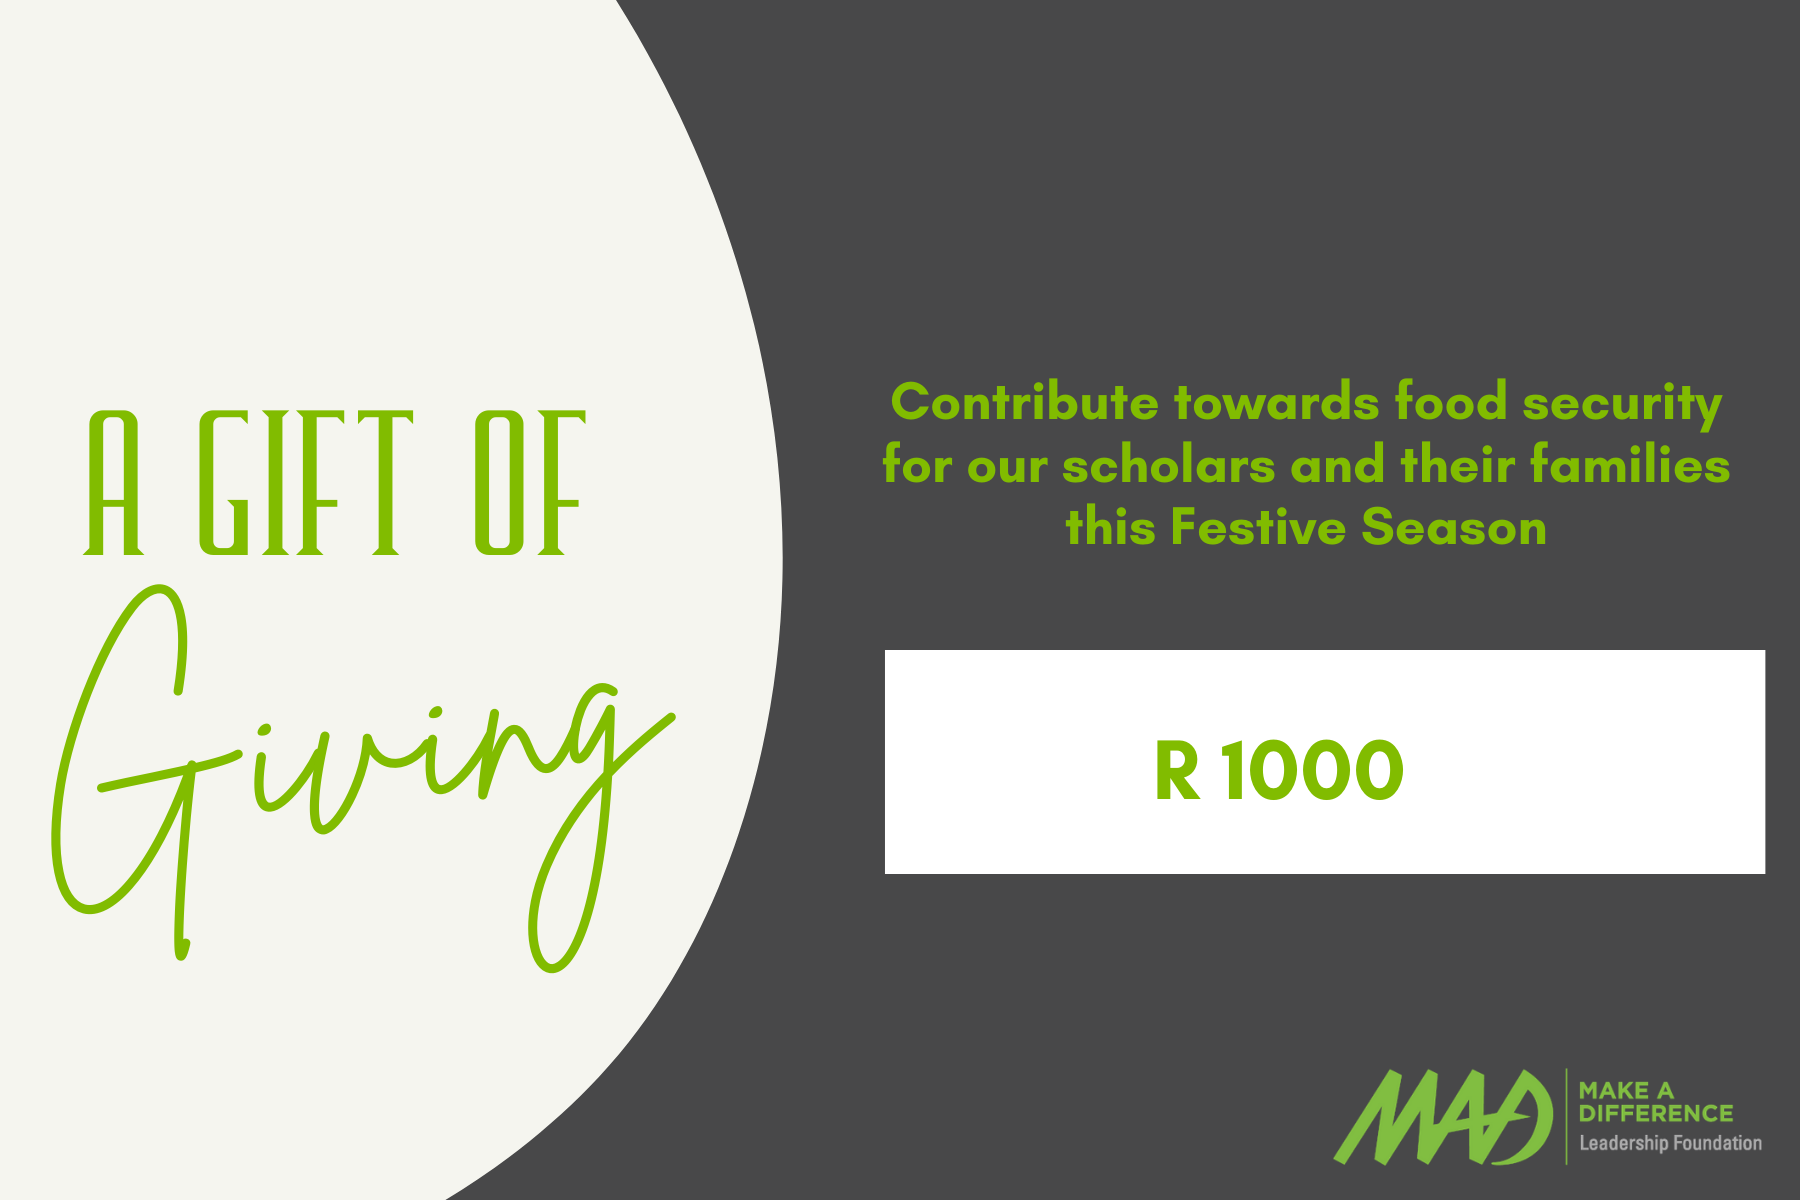 Contribute R1000 towards Food Security